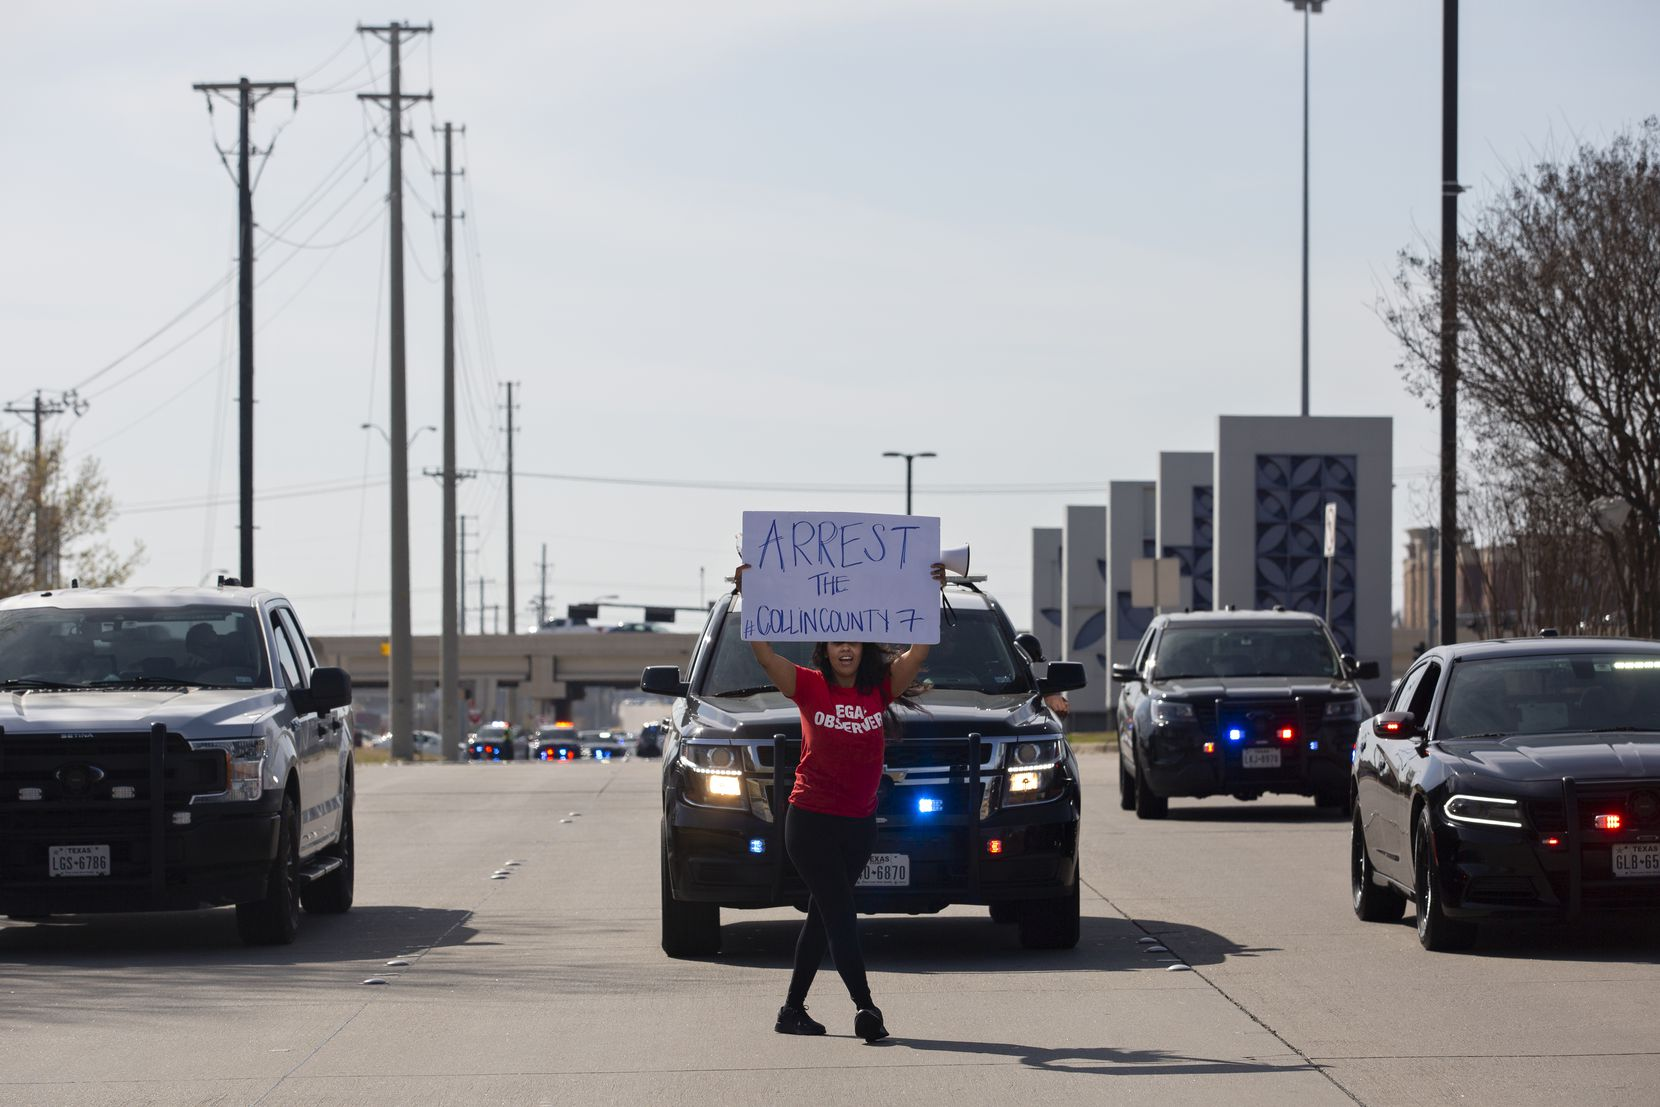 Renee White dances down the street as the tail end of the march leaving the Allen Outlets on Sunday, March 21, 2021. Demonstrators demanded justice for Marvin Scott III, who died a week prior while in custody at the Collin County Jail on March 14, 2021.  (Shelby Tauber/Special Contributor)